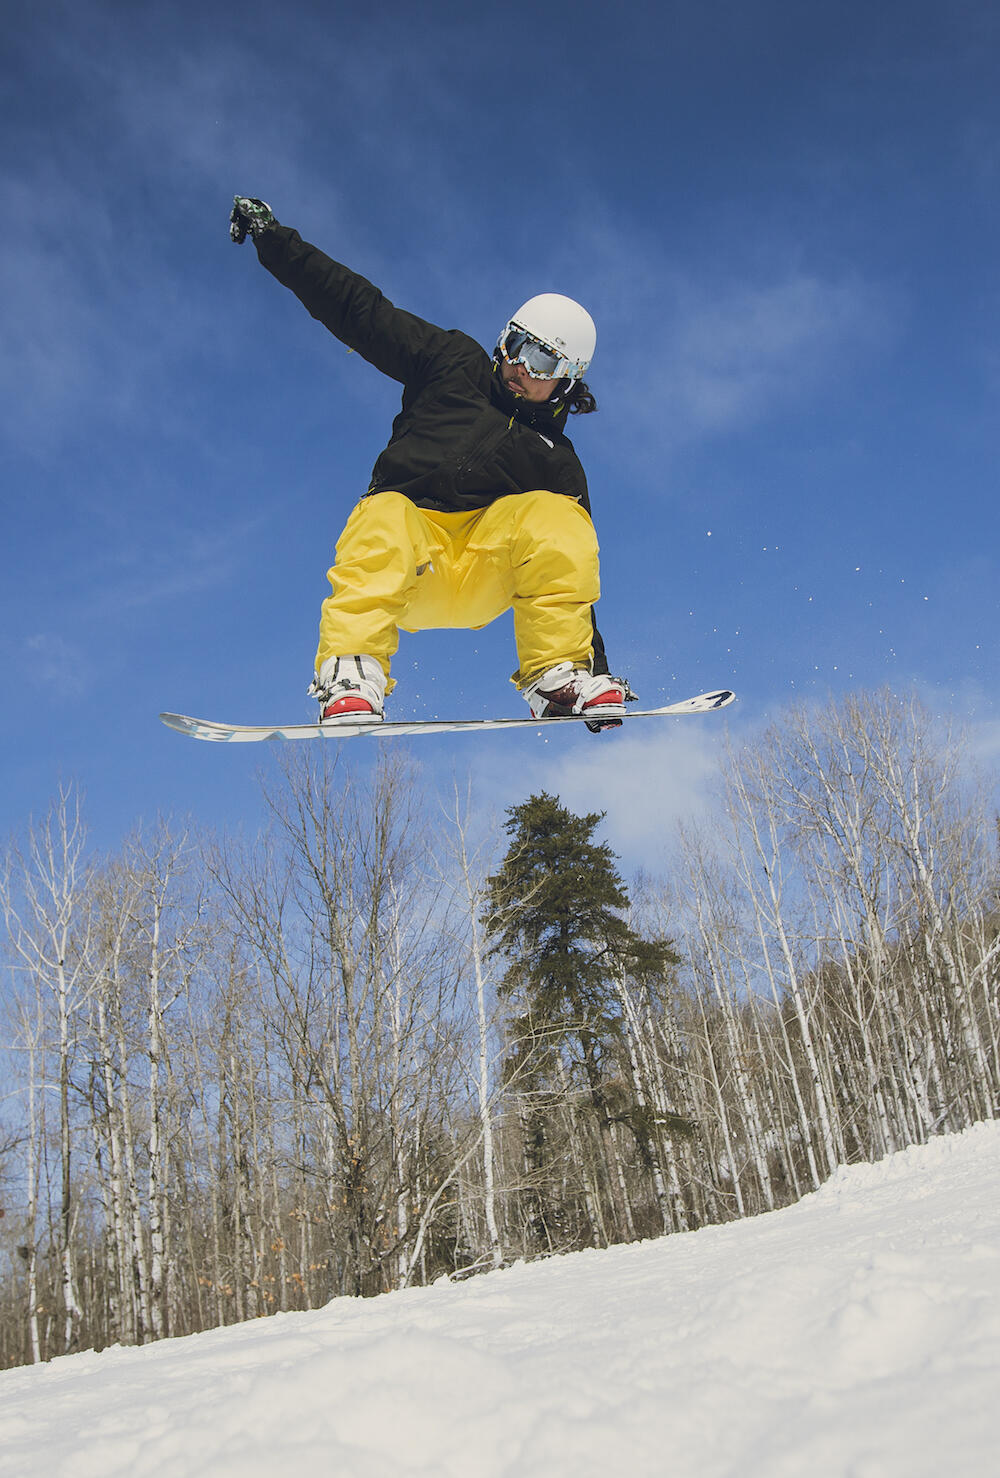 Young man catching some air on a snowboard.